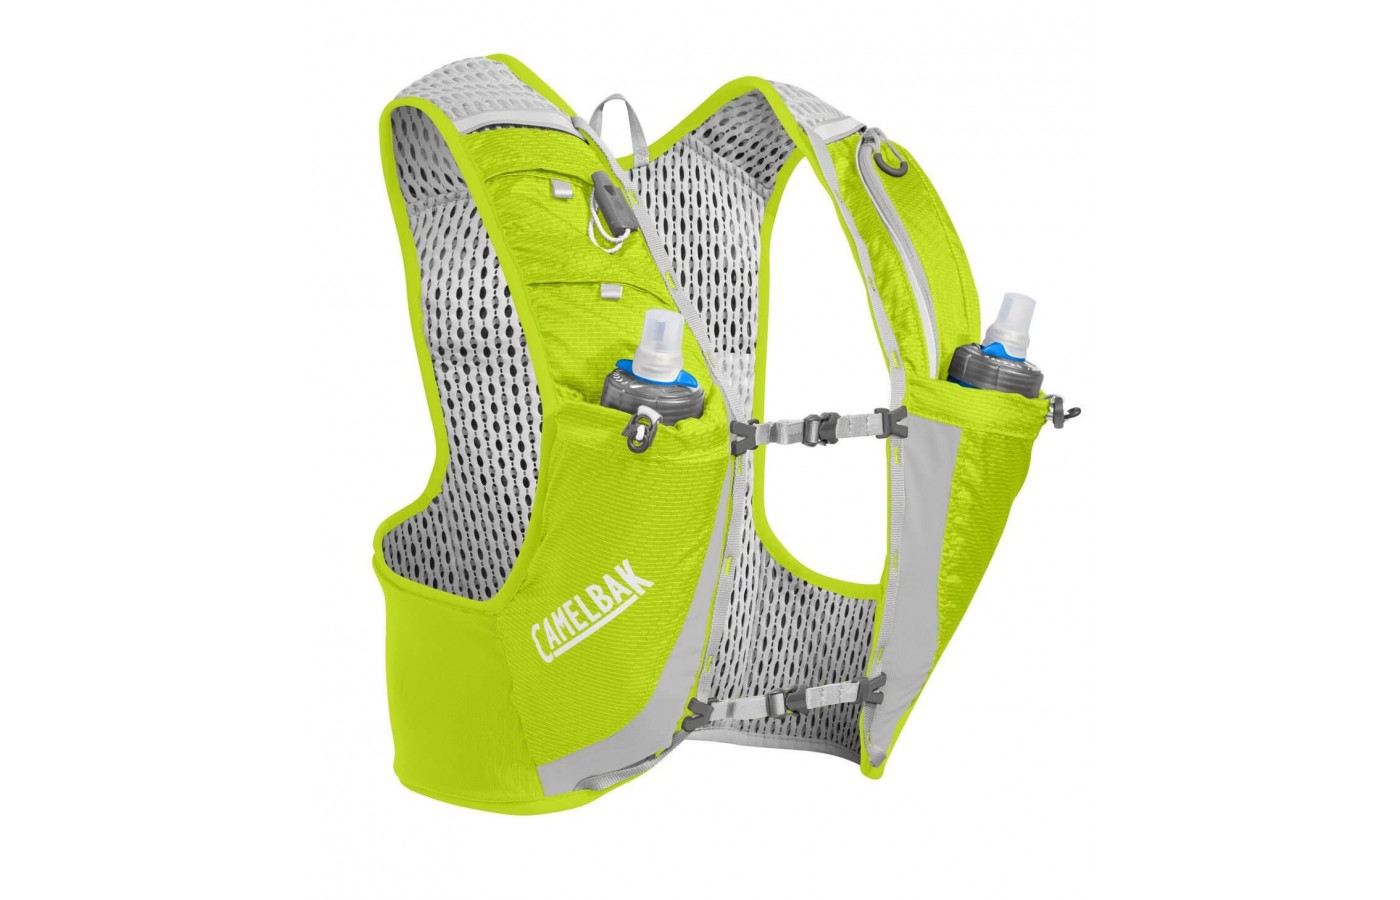 The CamelBak Hydration Ultra Pro Vest comes with two 17 ounce quick stow flasks